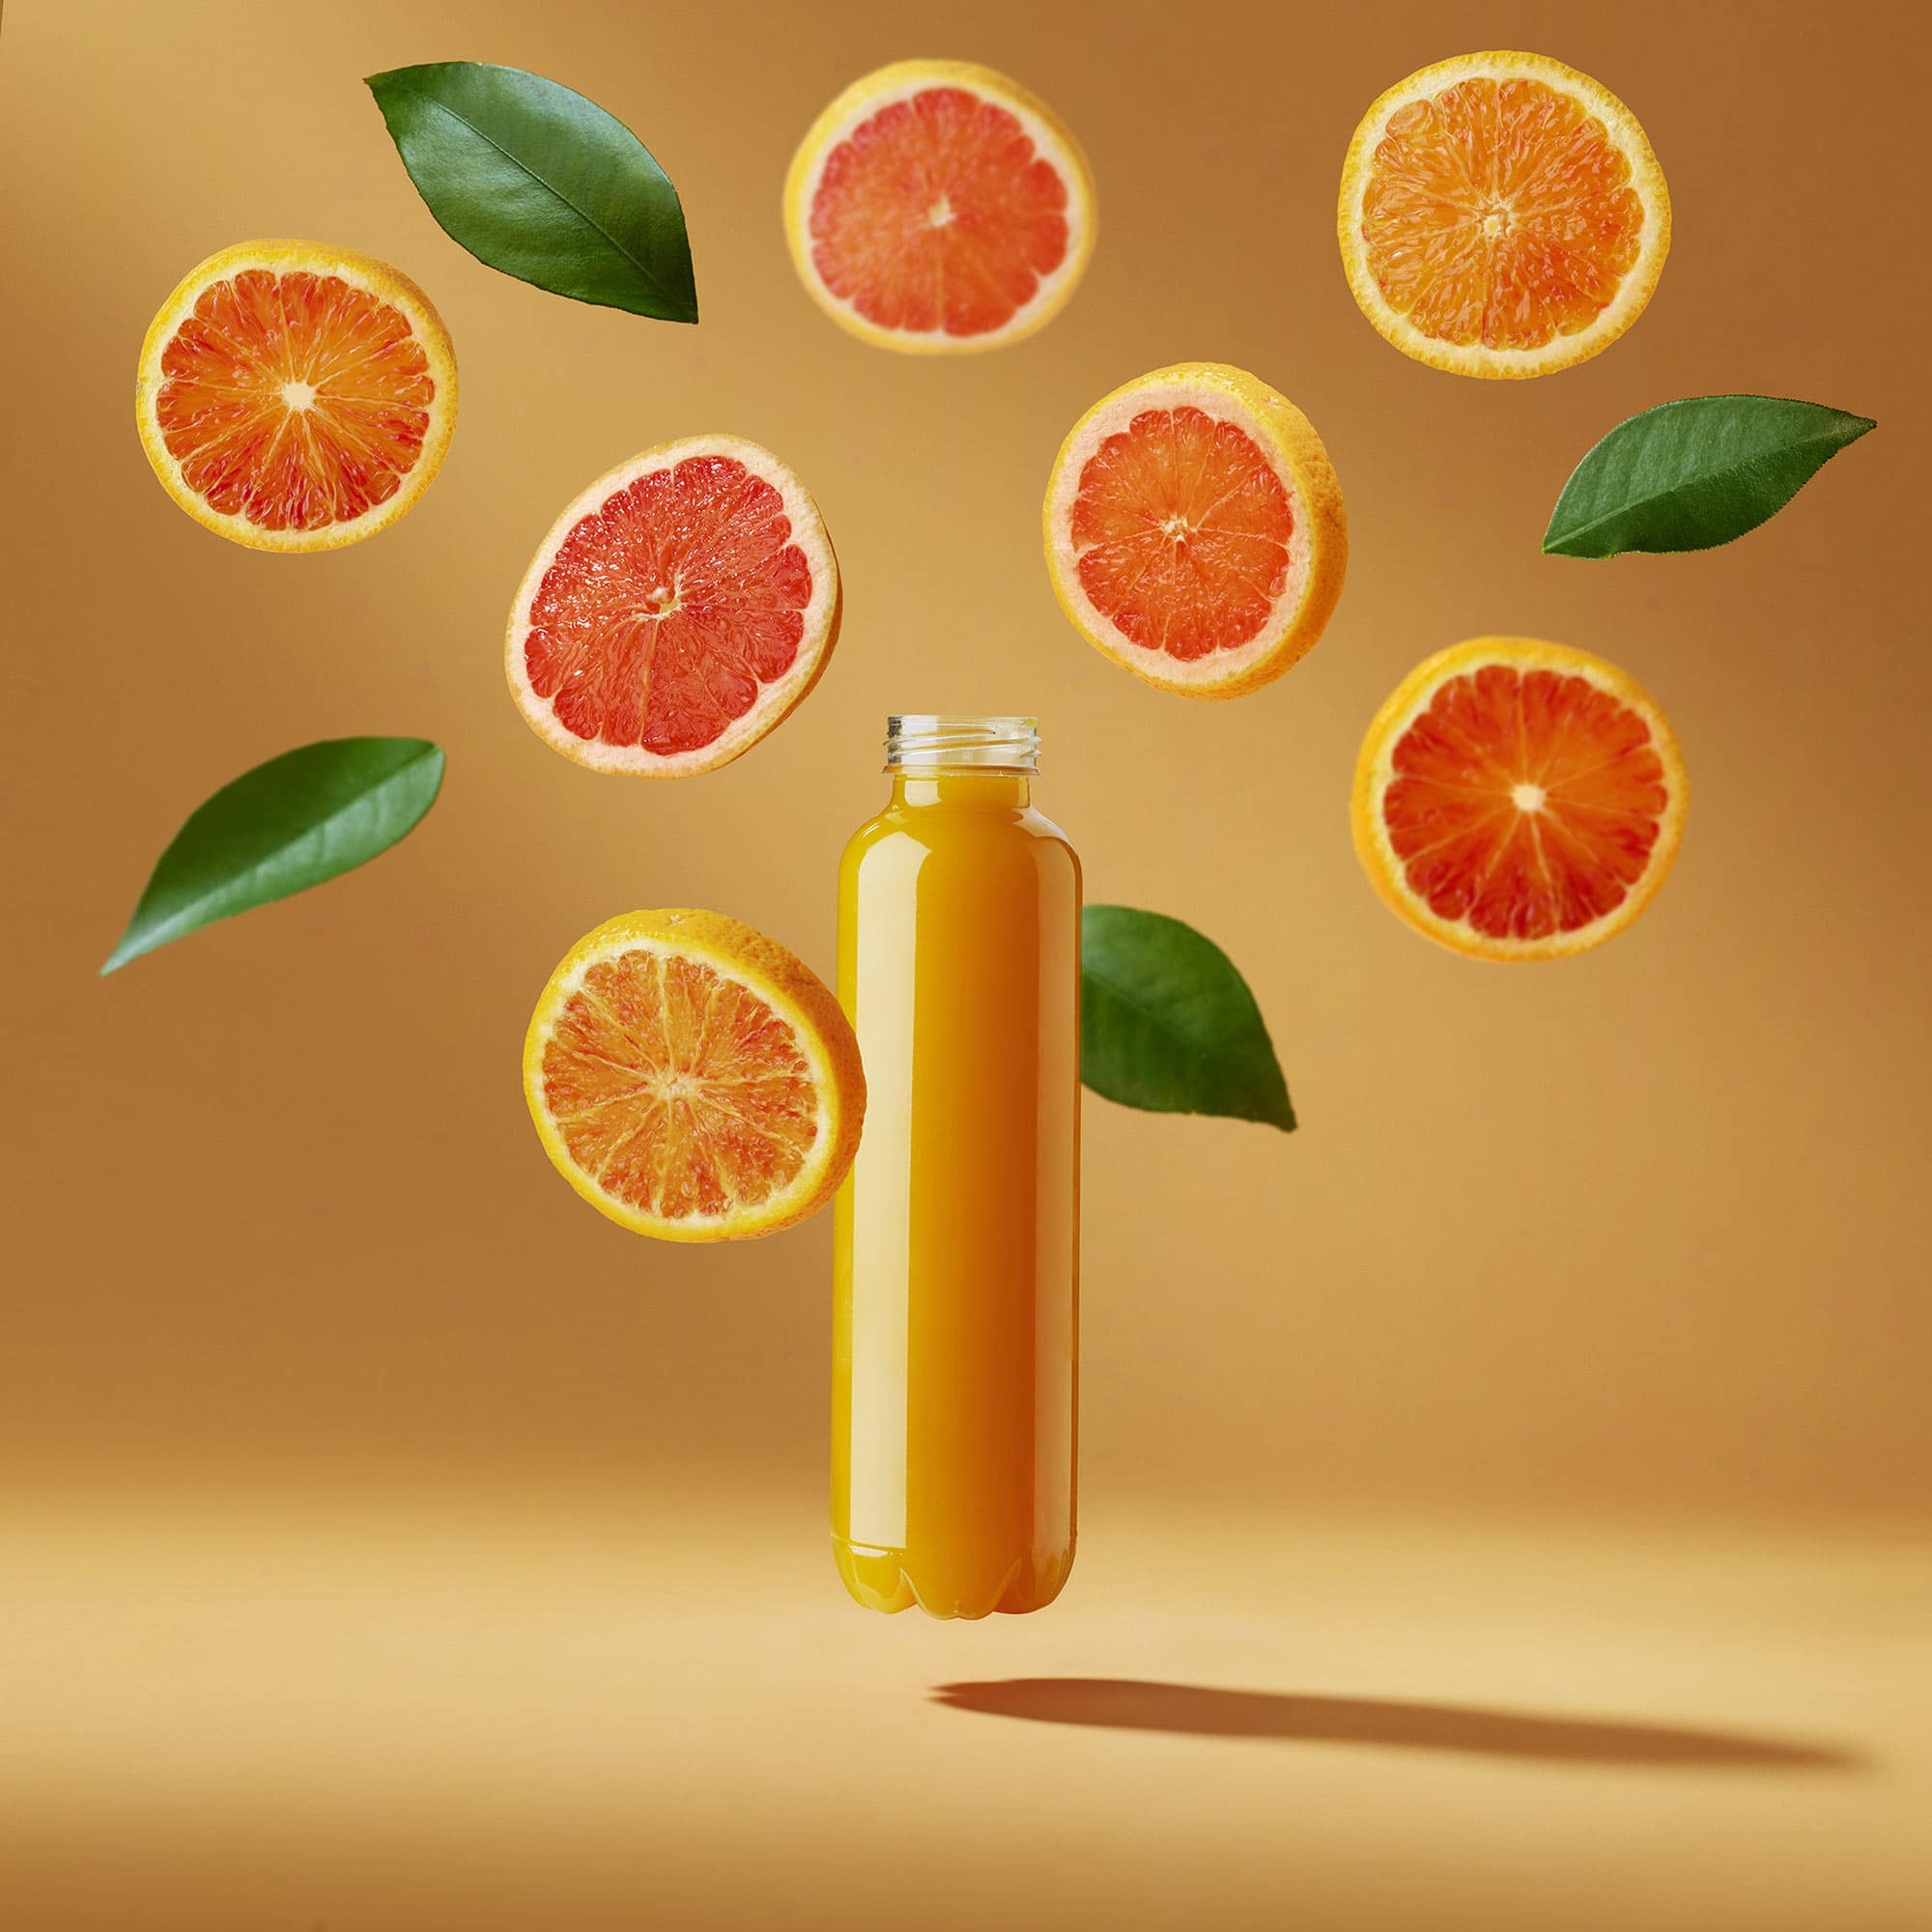 Orange Oranges Bottle Still Life Shot for Corepla by Fotografando